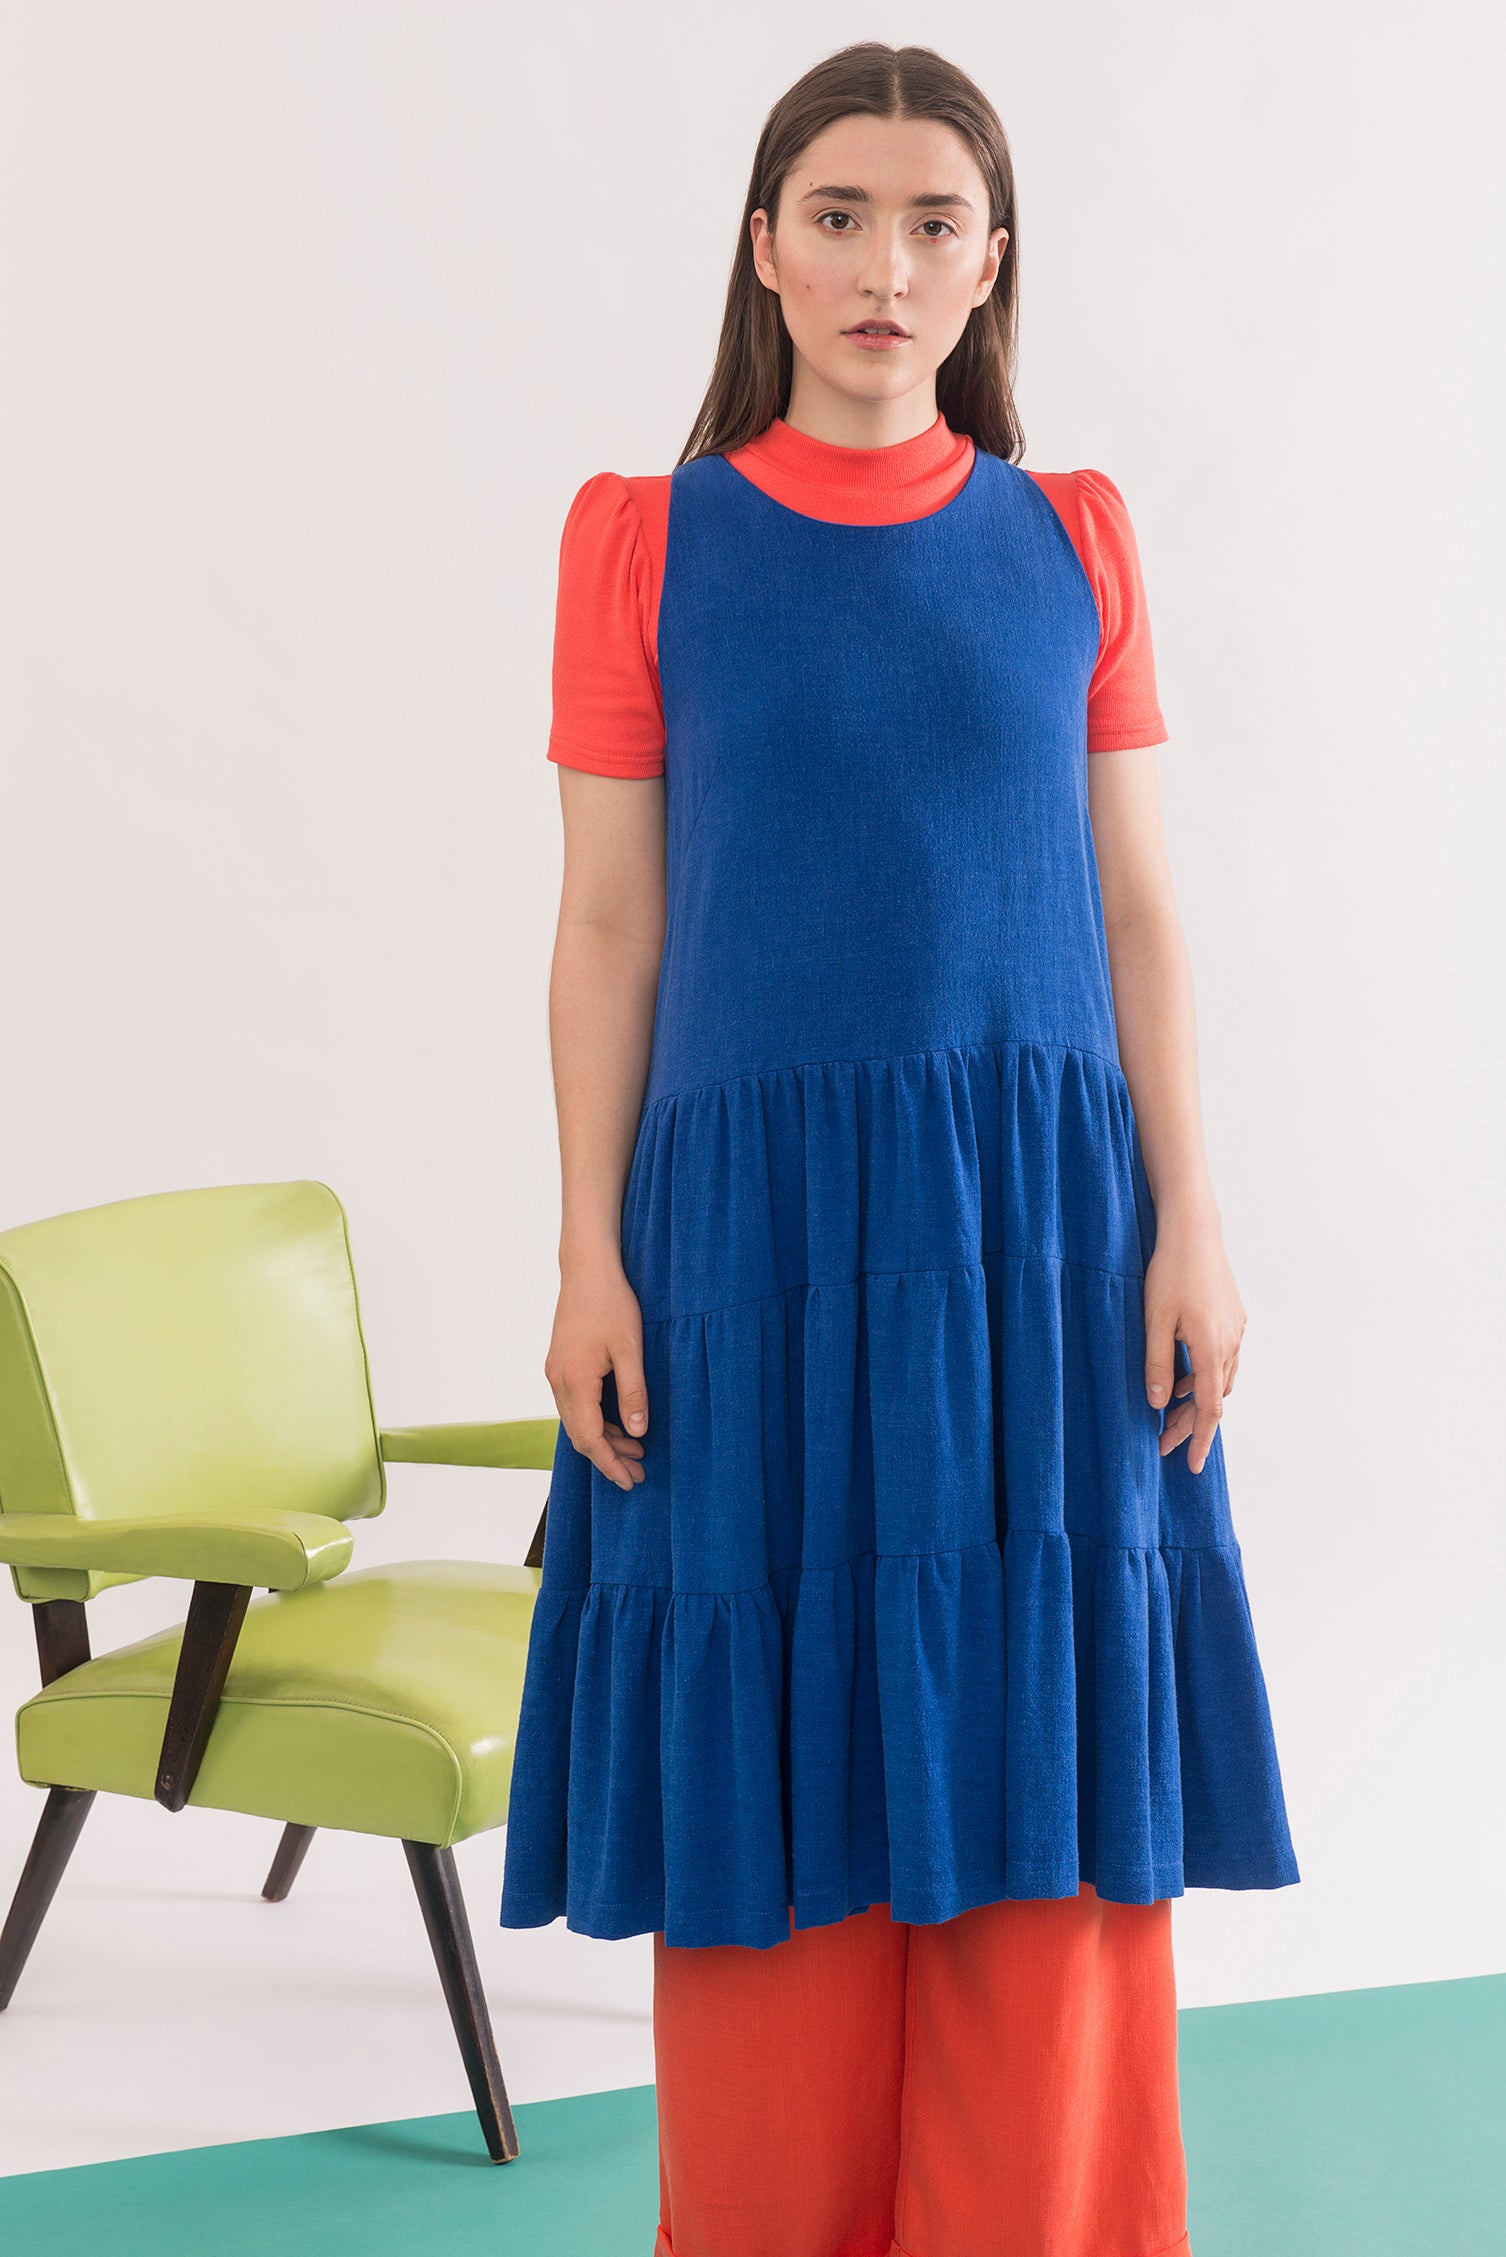 Chagall Dress by Jennifer Glasgow, Electric Blue, sleeveless, three-tiered, pockets, rayon and linen, sizes XS to XL, made in Montreal